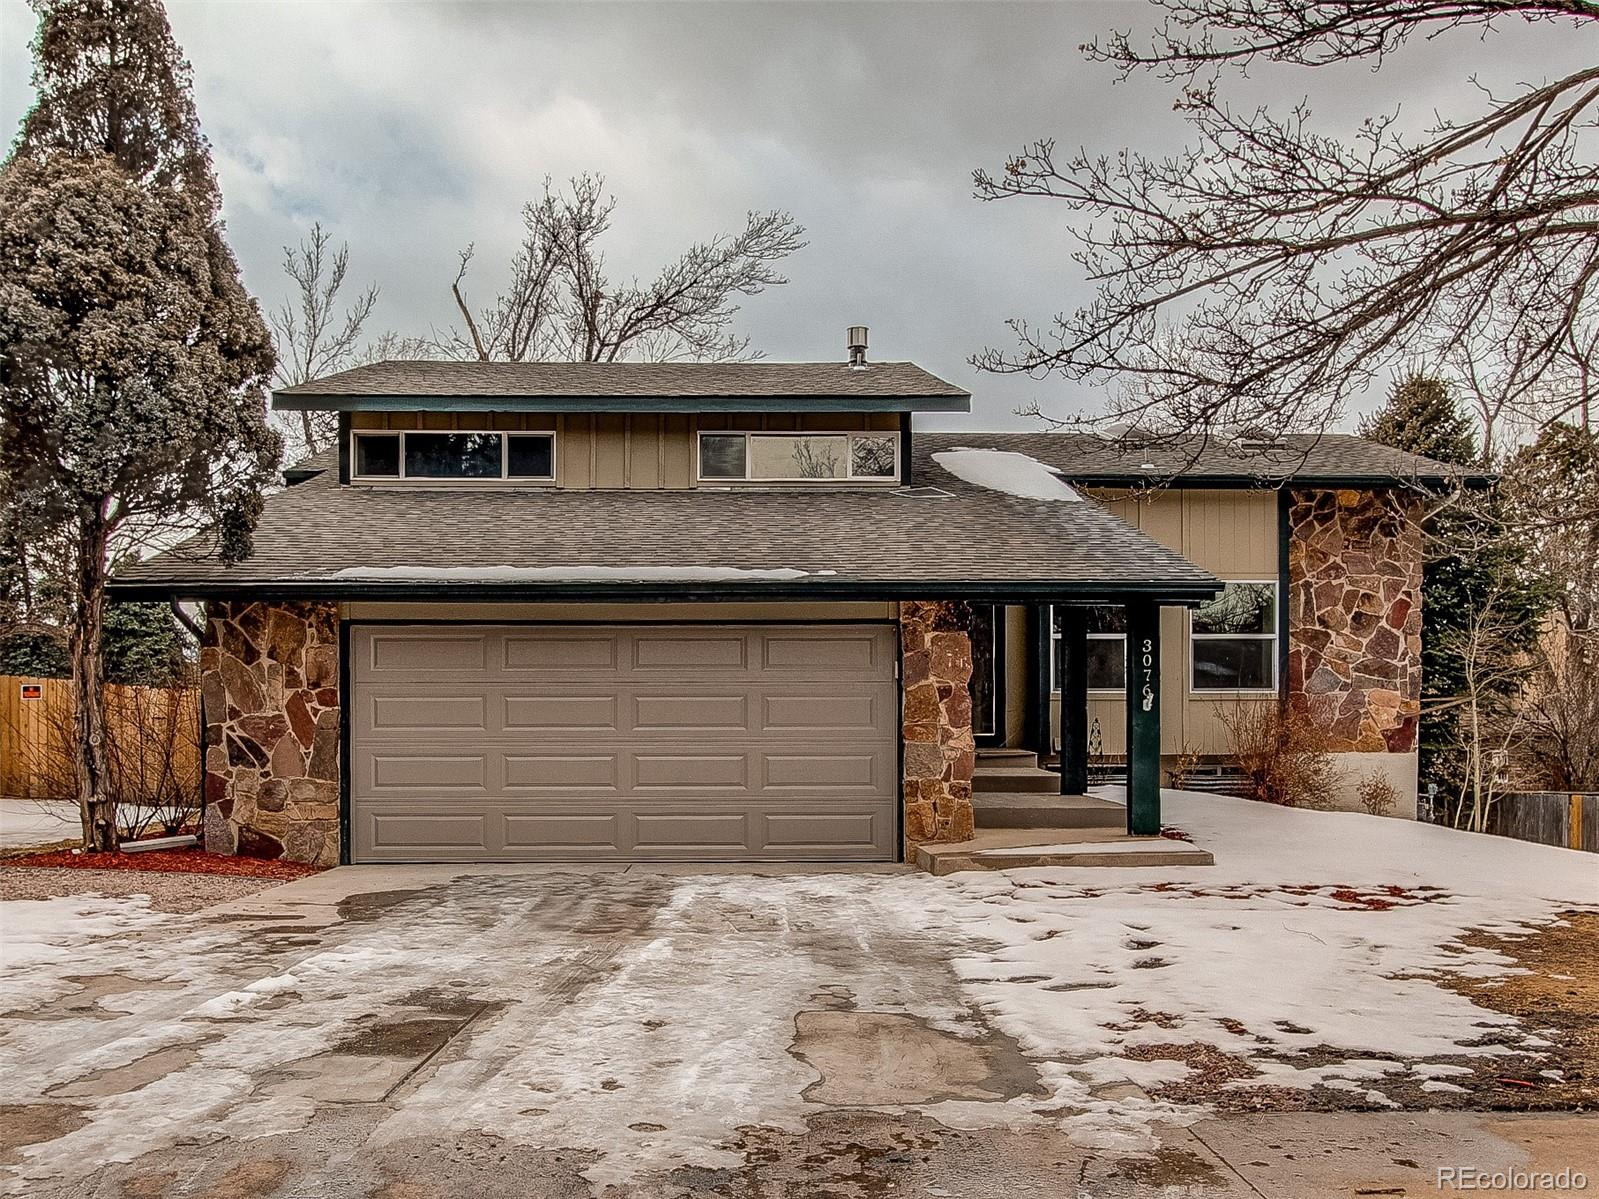 MLS# 3897576 - 2 - 3076 Oro Blanco Drive, Colorado Springs, CO 80917